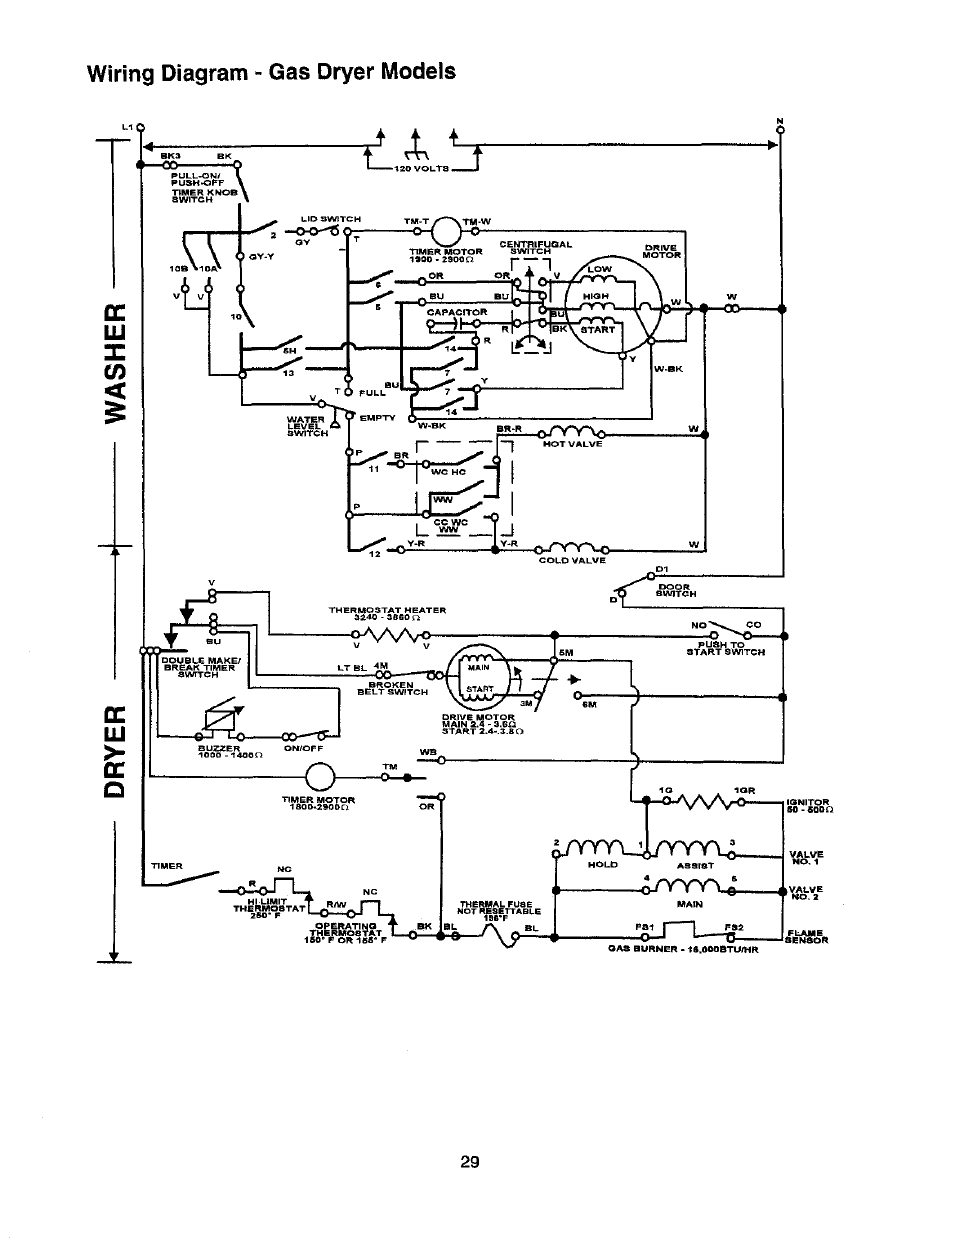 Whirlpool Wiring Diagram | Wiring Diagram on